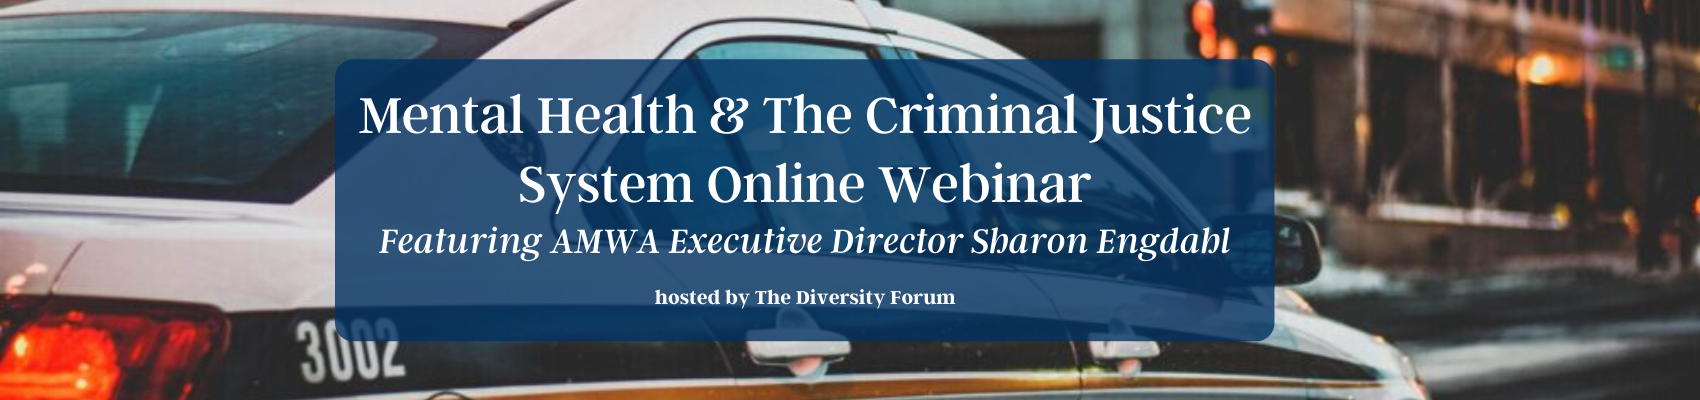 Mental Health & The Criminal Justice System Online Webinar